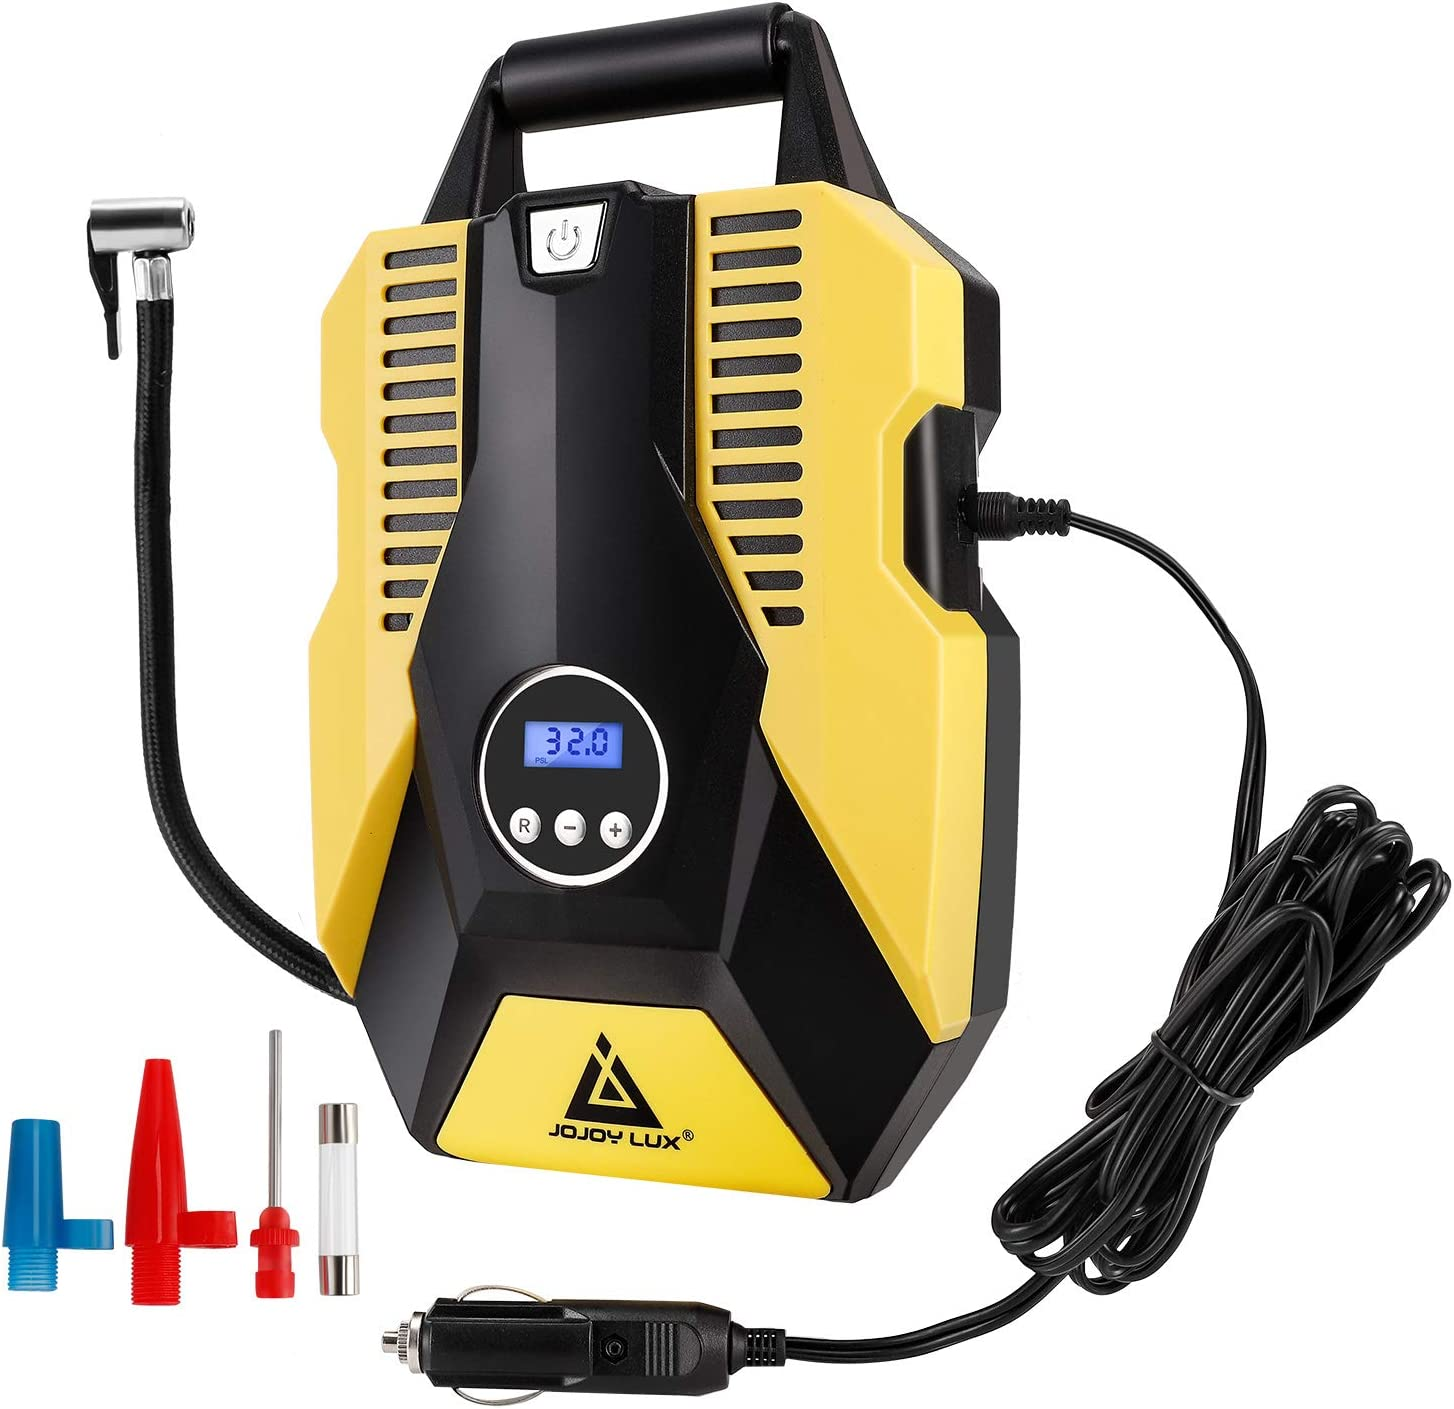 Digital Auto Tire Inflator, 12V DC Portable Air Compressor Pump for Car Tires, 150 PSI Auto Shut Off with Emergency LED Flasher, Long Cable for Car, Bicycle, Motocycle, Air Boat and Other Inflatables